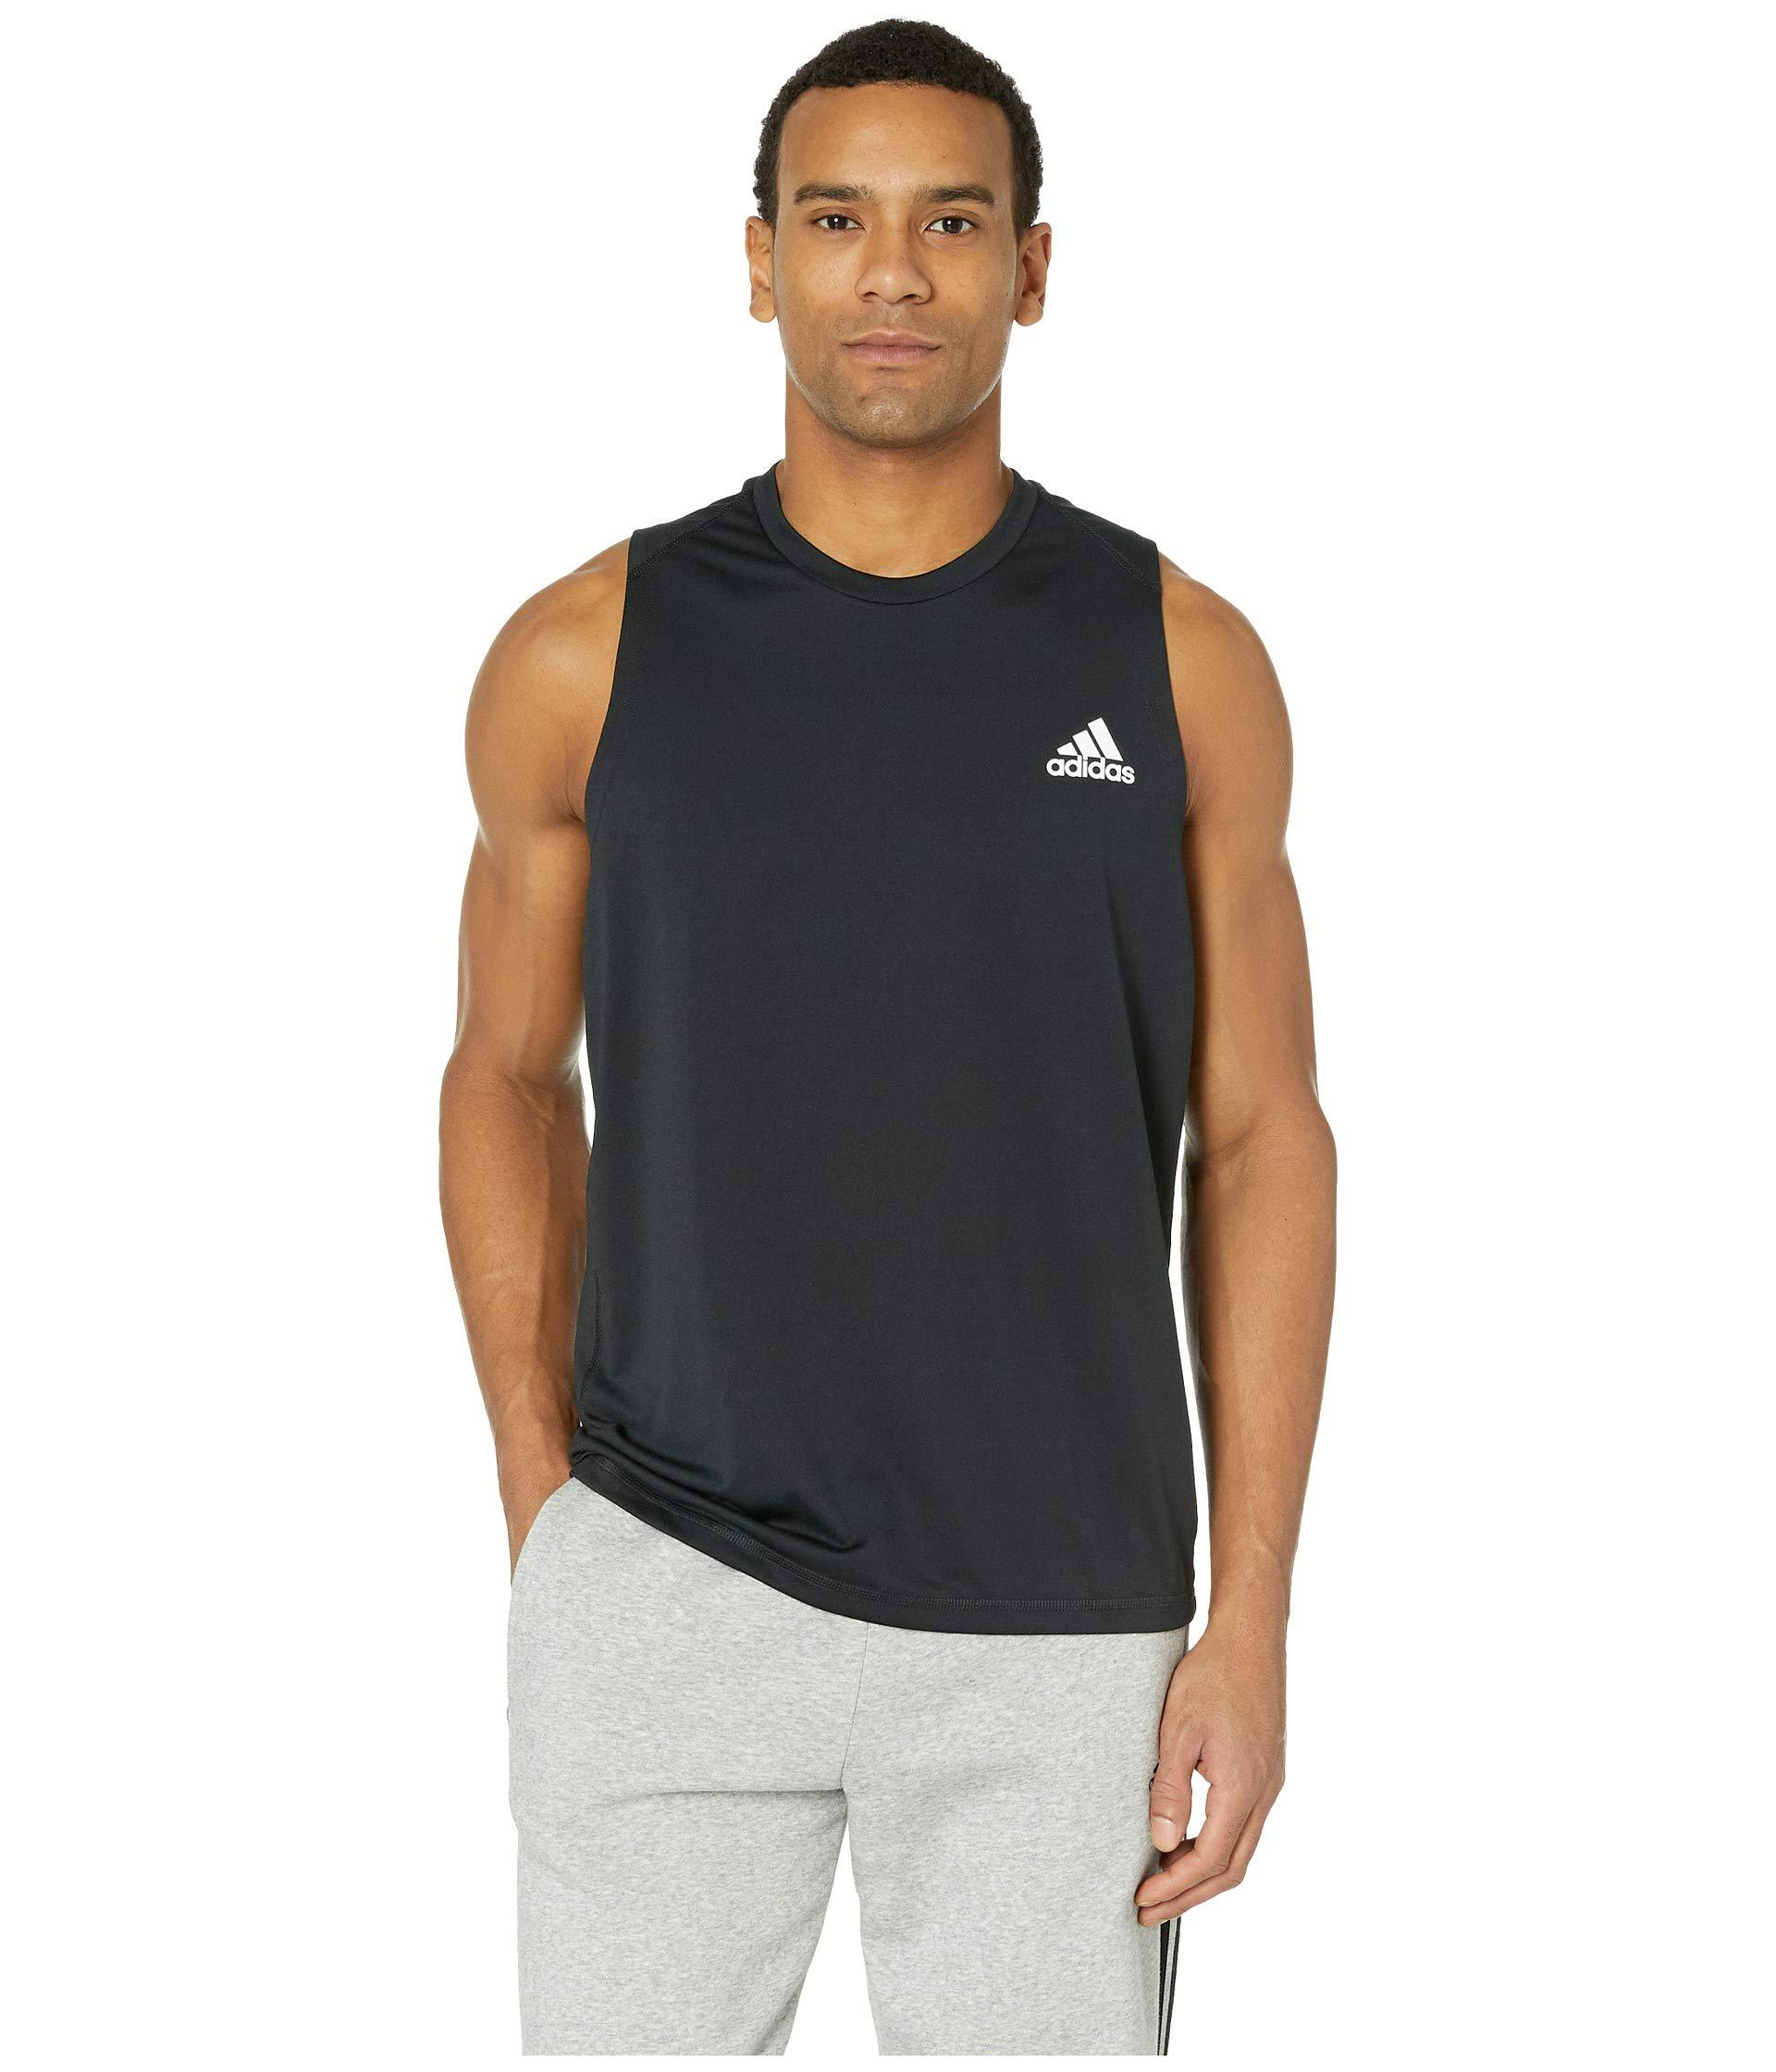 12bdf9f89 Mens Adidas Sleeveless T Shirts - DREAMWORKS